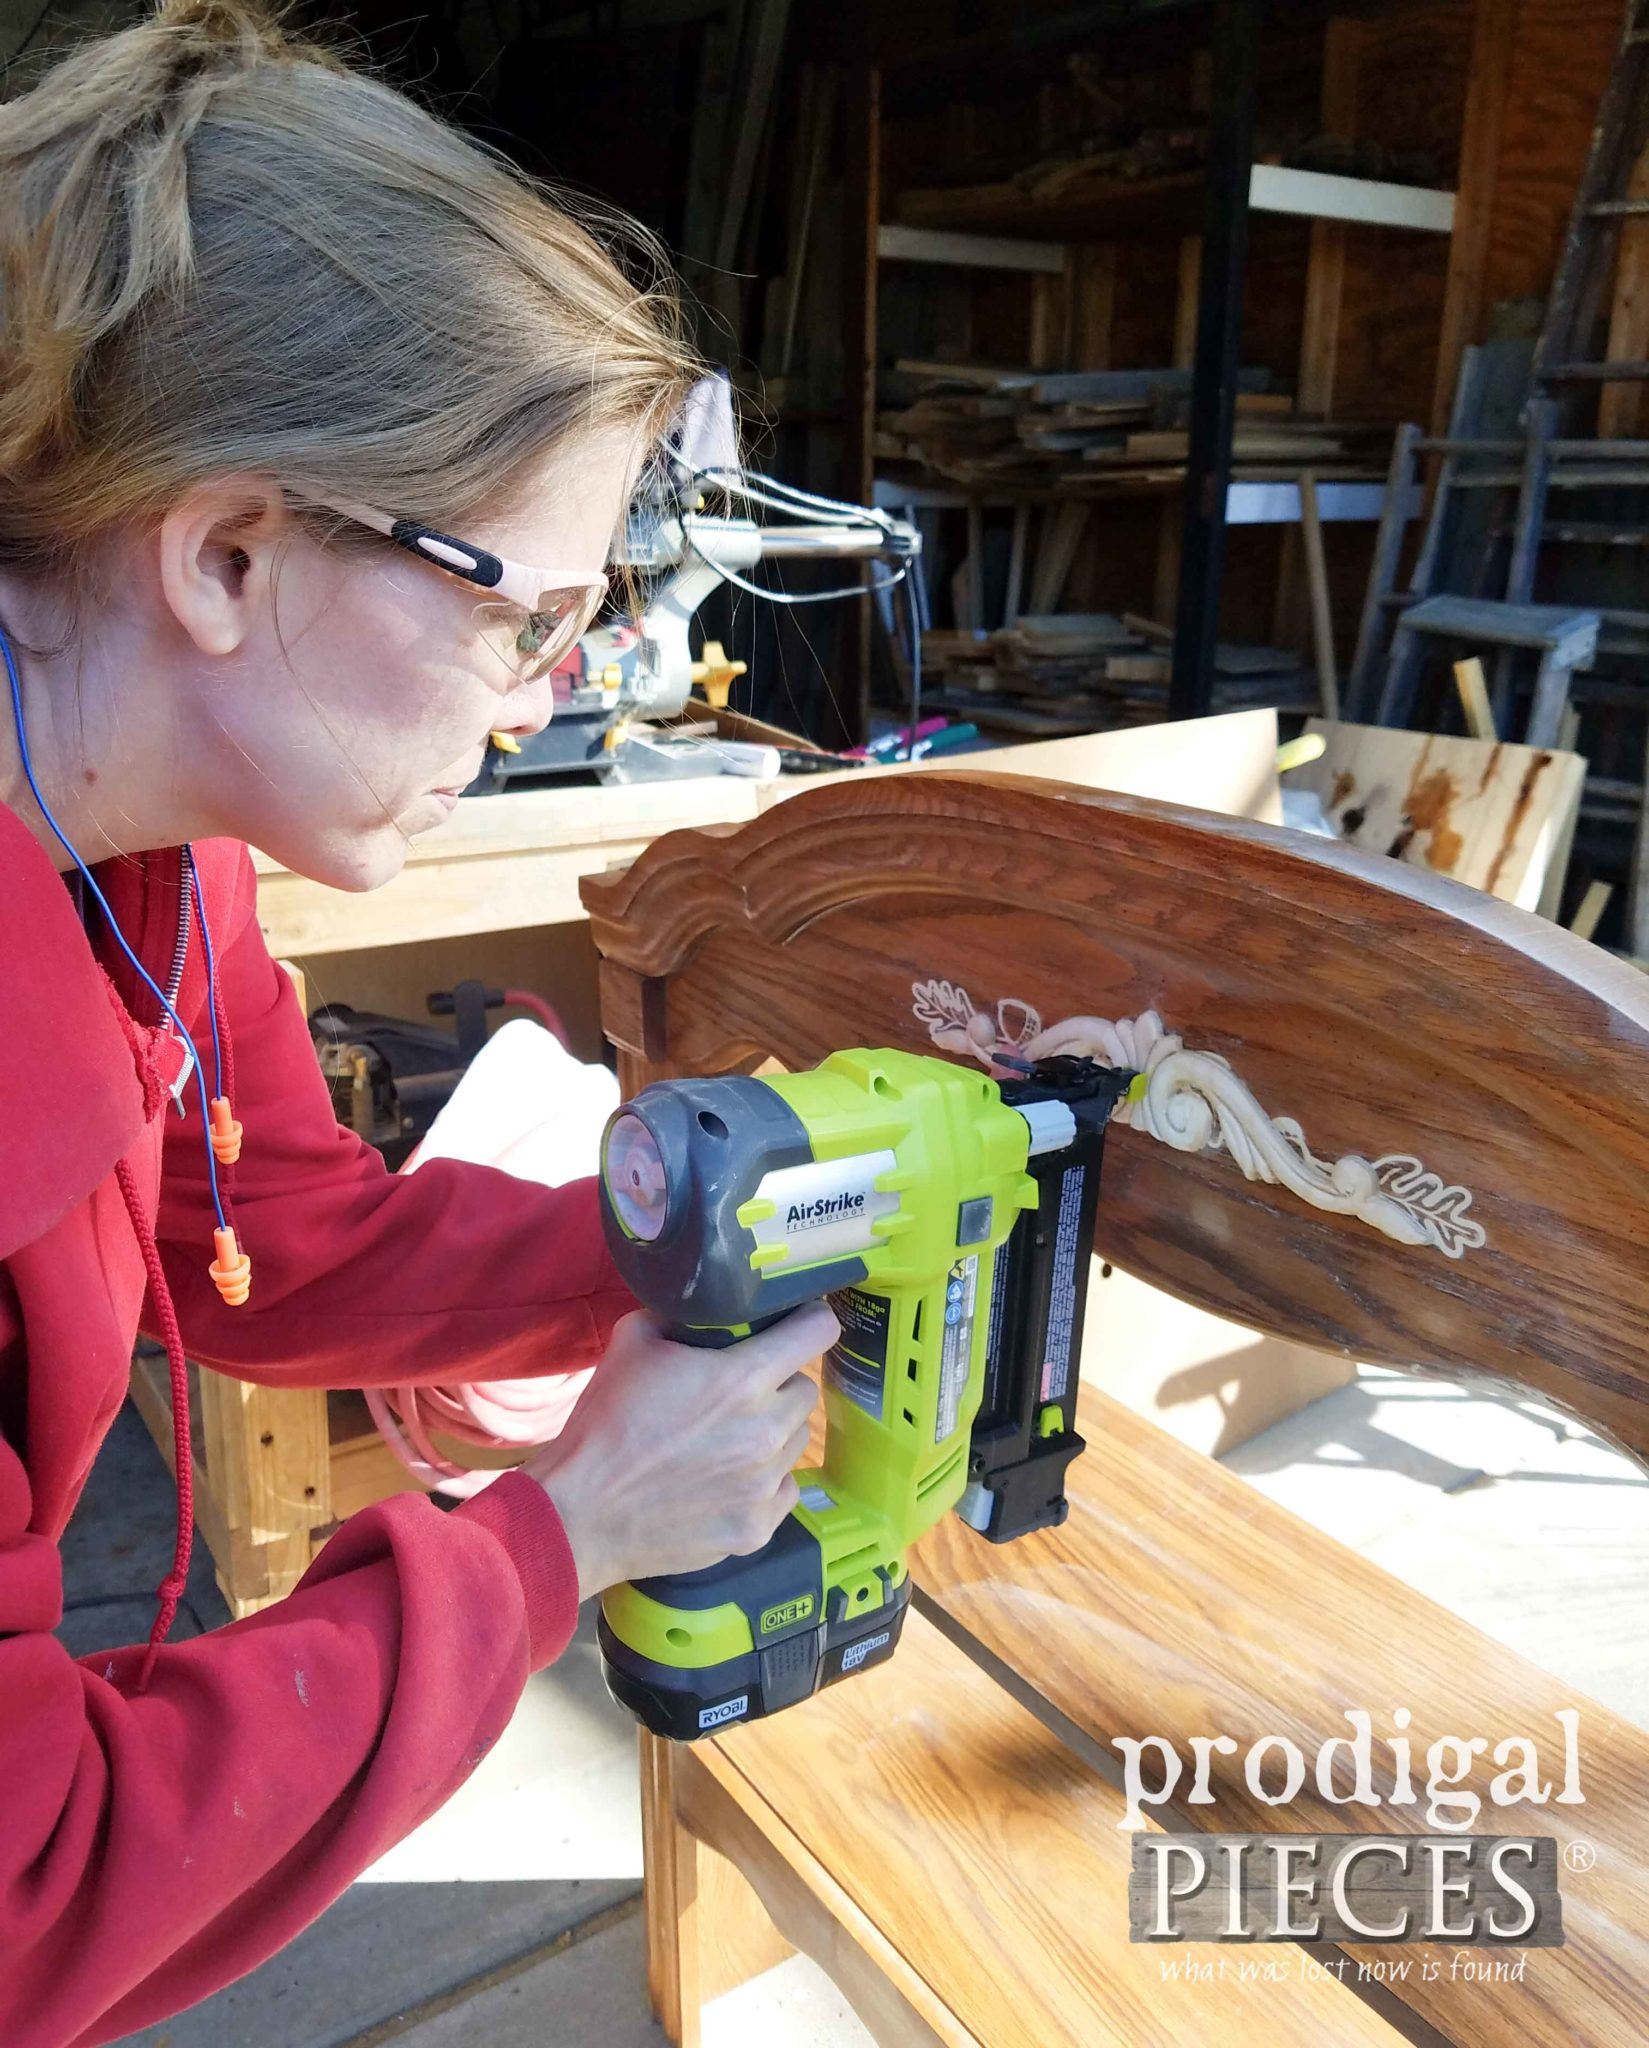 Nailing Wood Applique onto Broyhill Hutch Desk for Makeover by Larissa of Prodigal Pieces | prodigalpieces.com